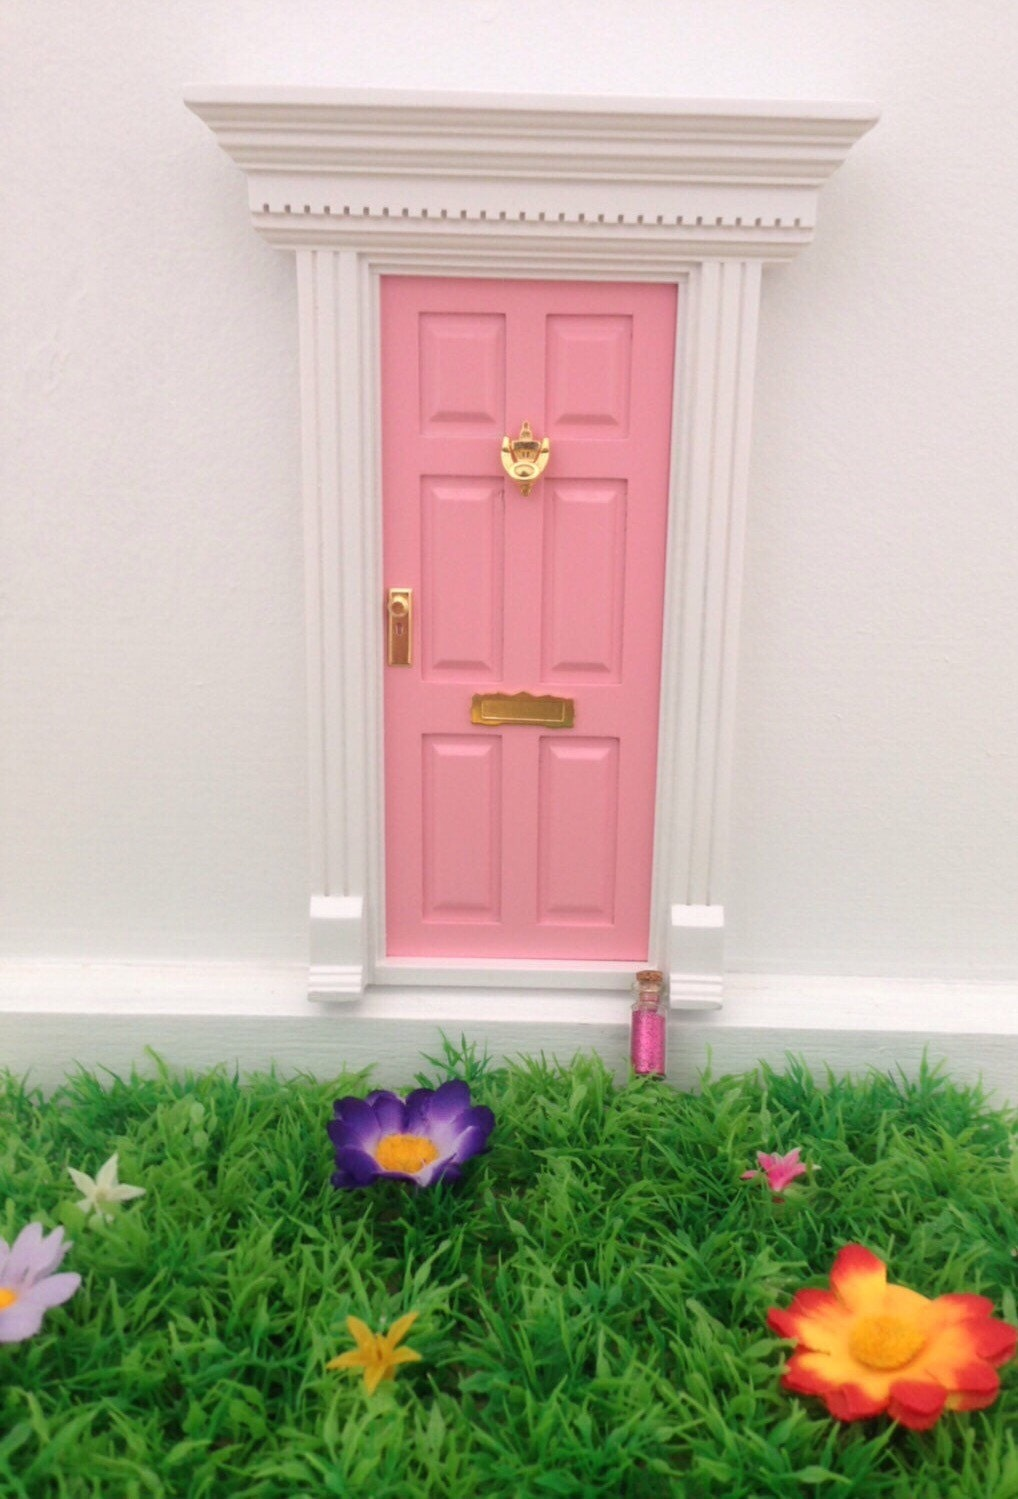 Magic tooth fairy door by magicfairydoorsau on etsy for Fairy door with key